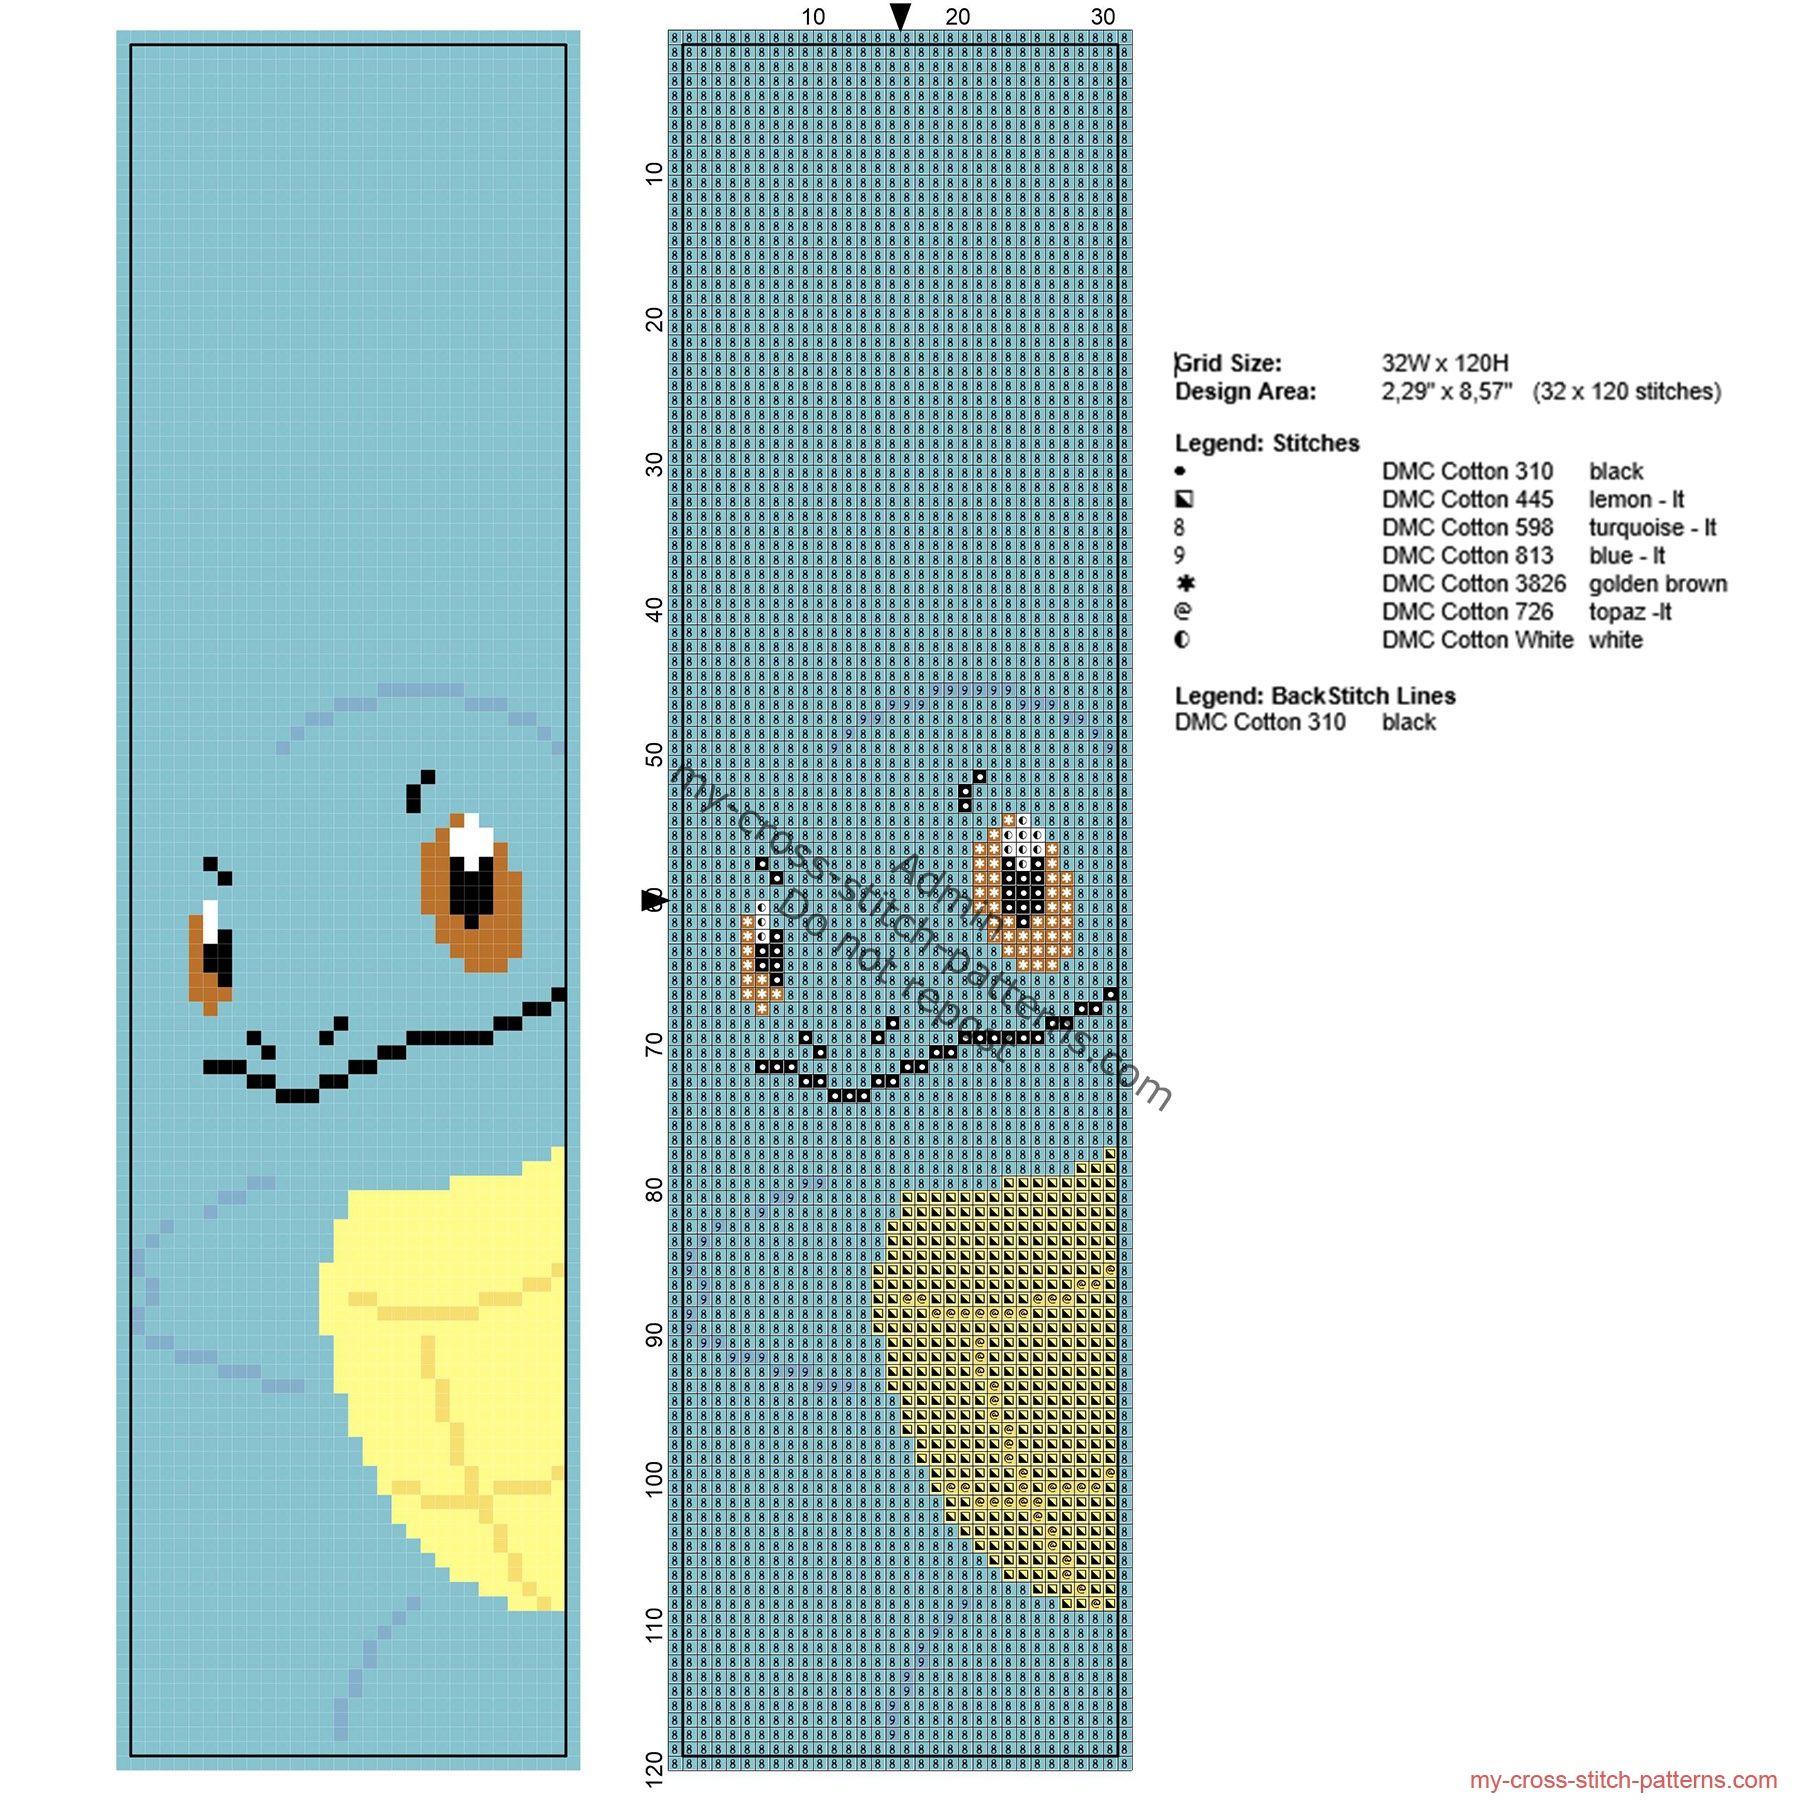 free_cross_stitch_pattern_bookmark_with_pokemon_squirtle_32_x_120